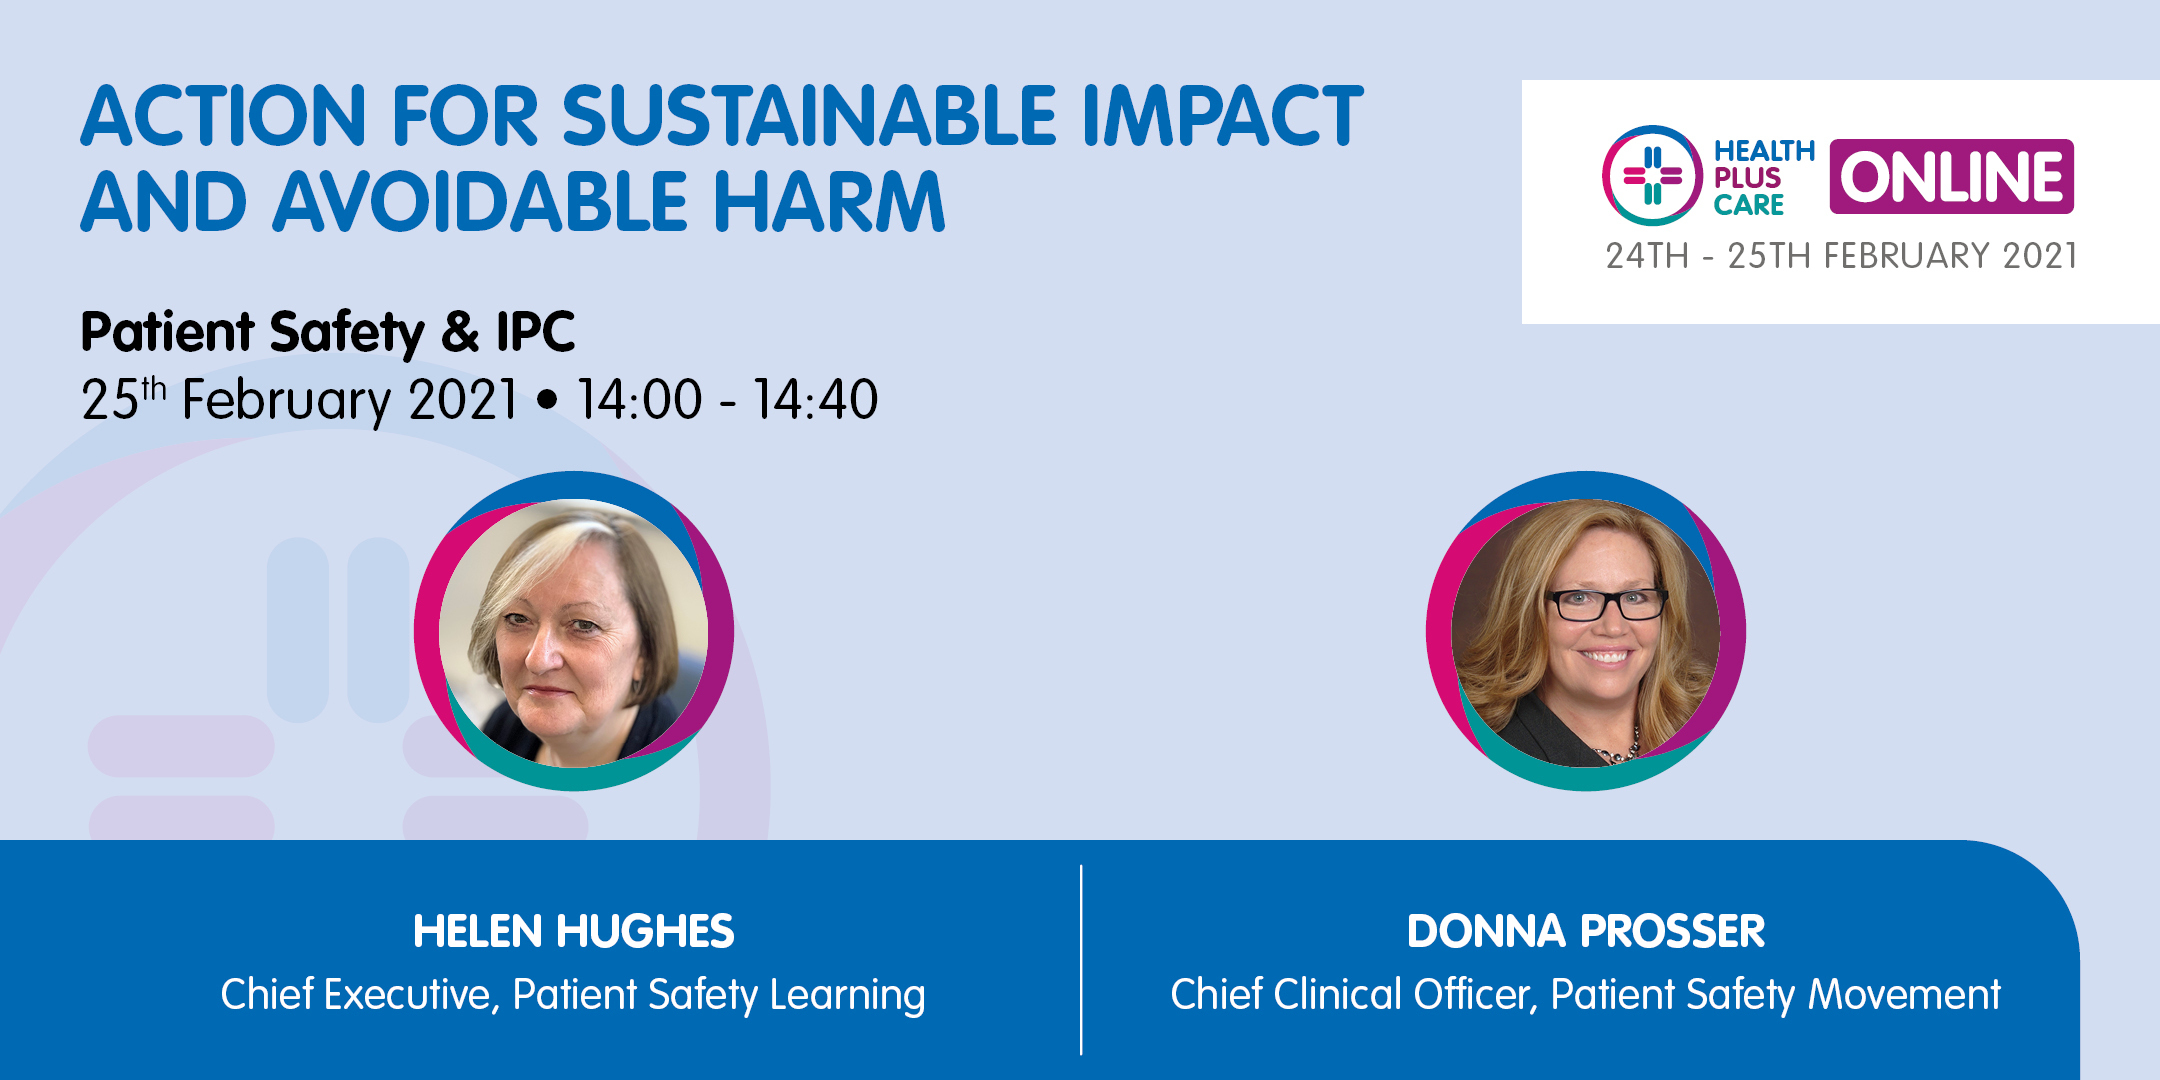 Action for sustainable impact and avoidable harm